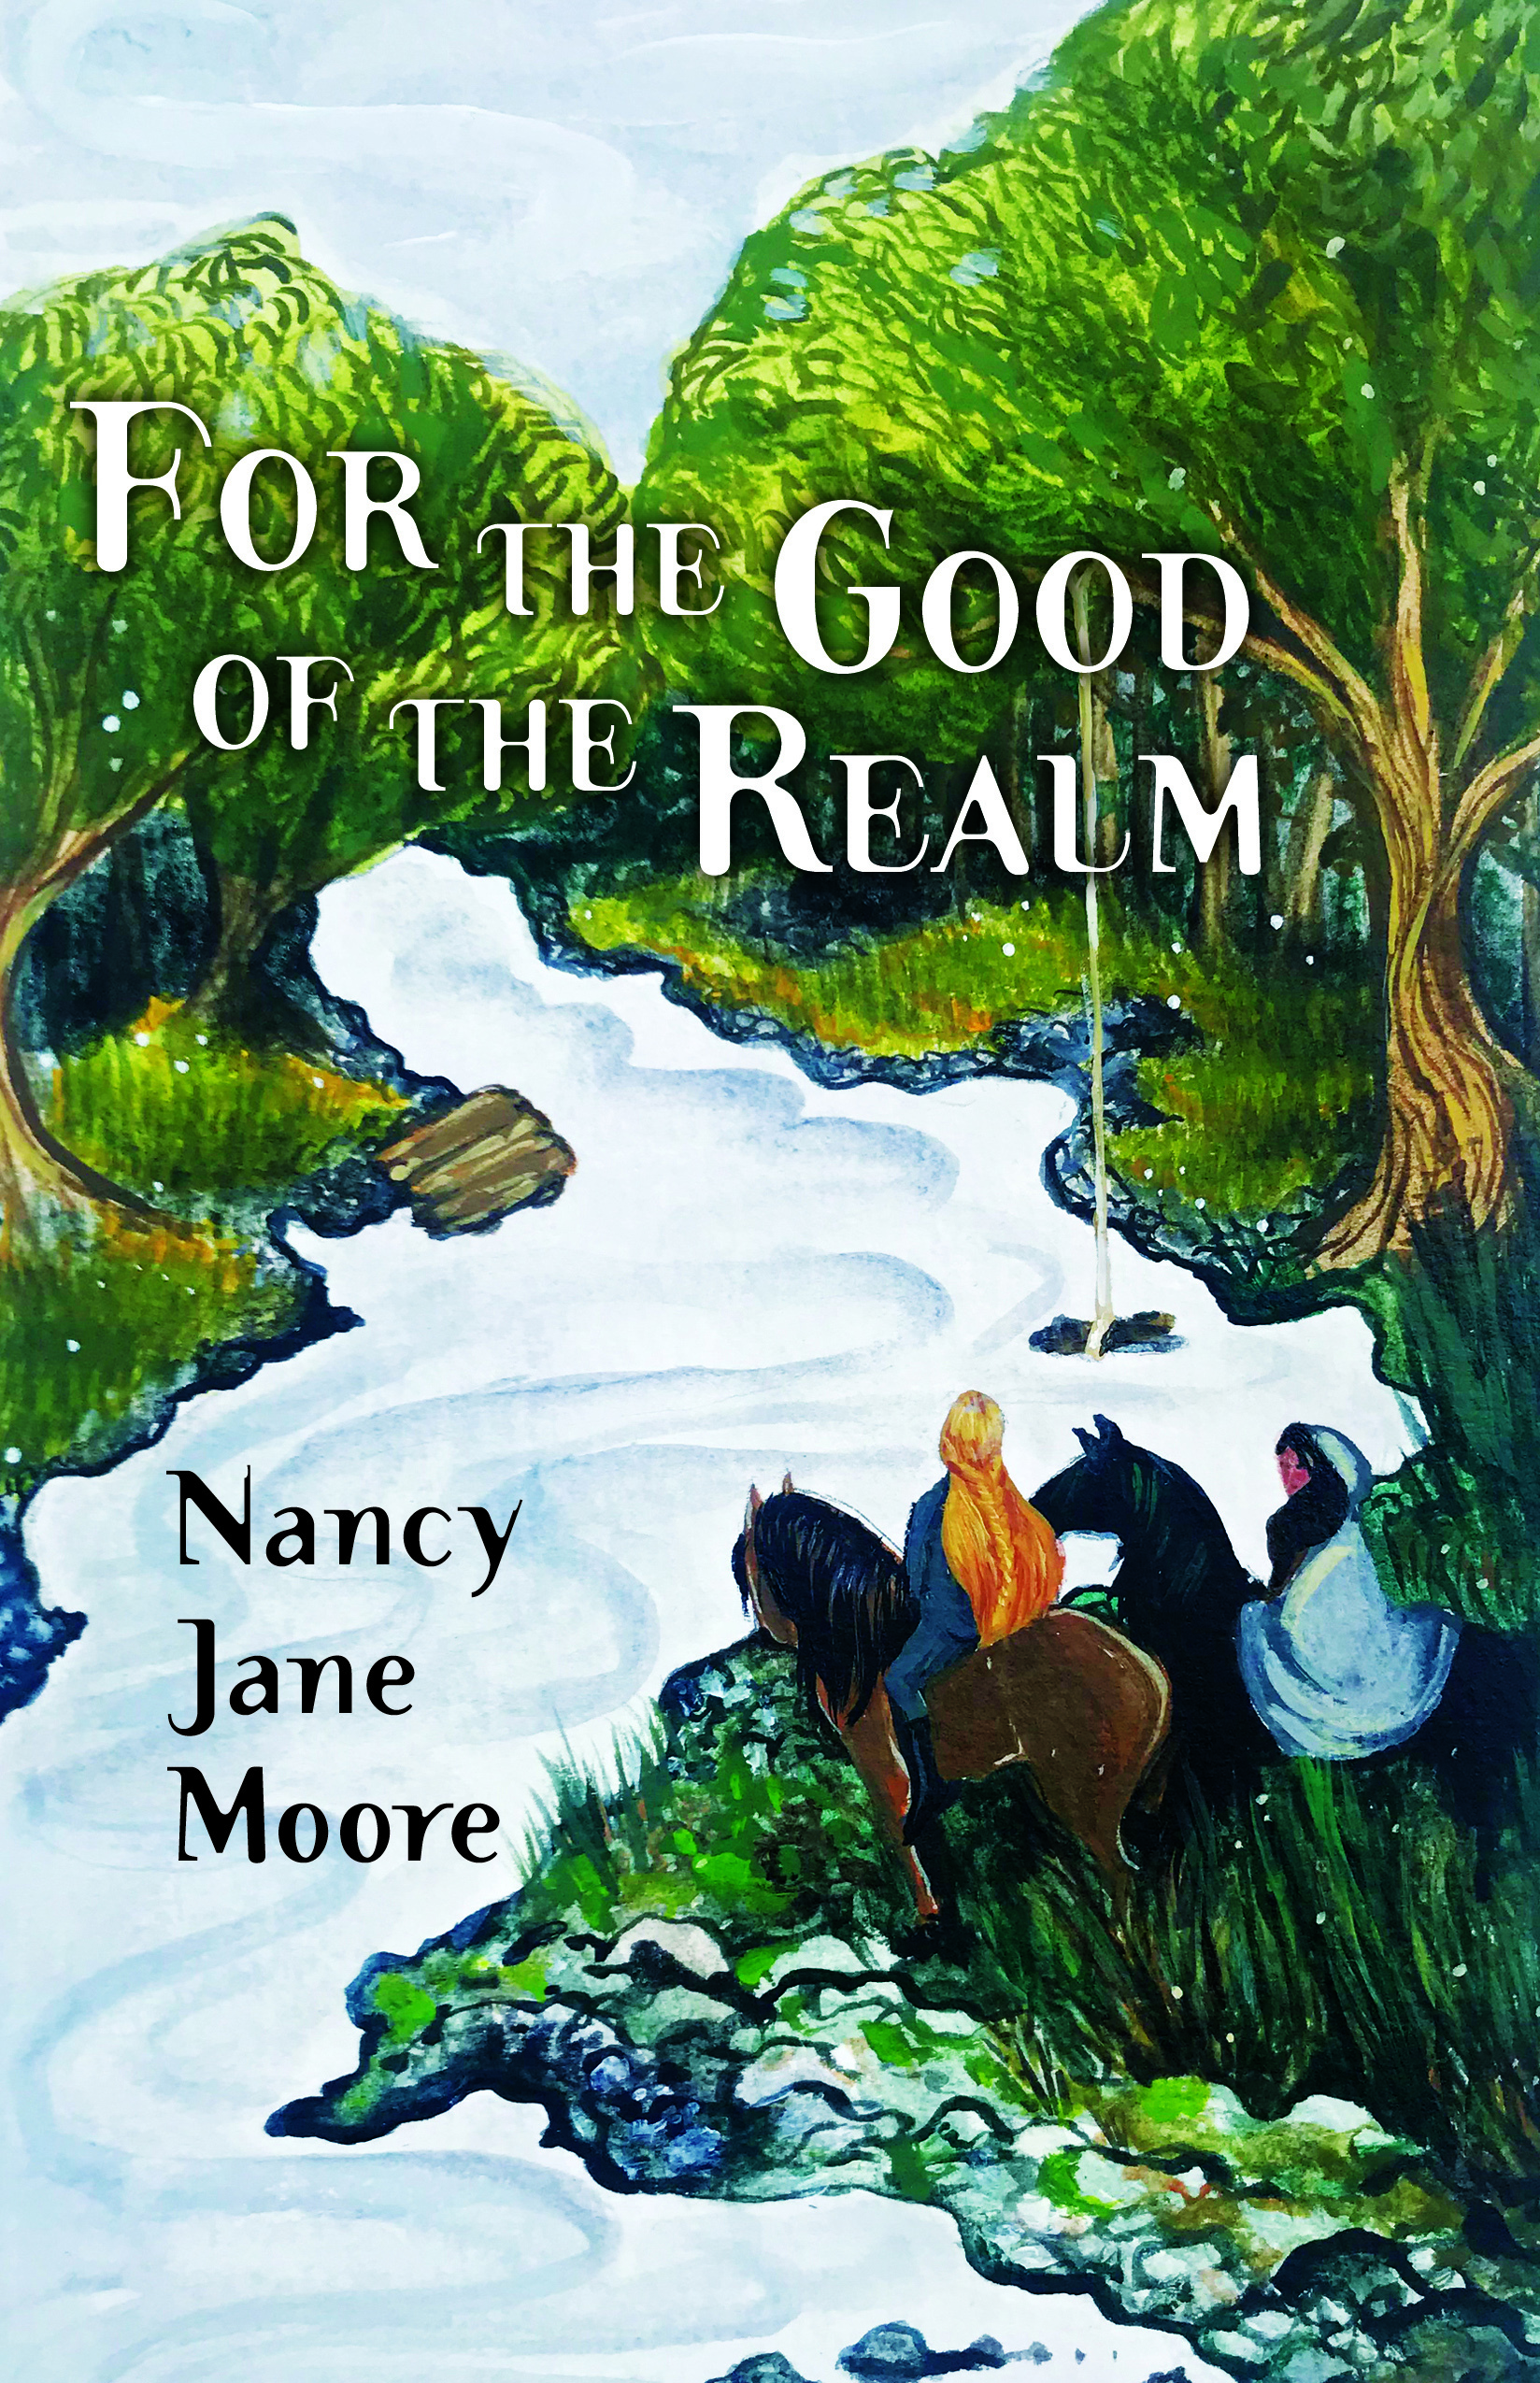 Cover image of For the Good of the Realm by Nancy Jane Moore, with an illustration of a river flowing towards the viewer and large trees on both sides under a blue, cloudy sky. Two women draped in blue cloth, both with long hair (fair and black), are on horseback watching the water.